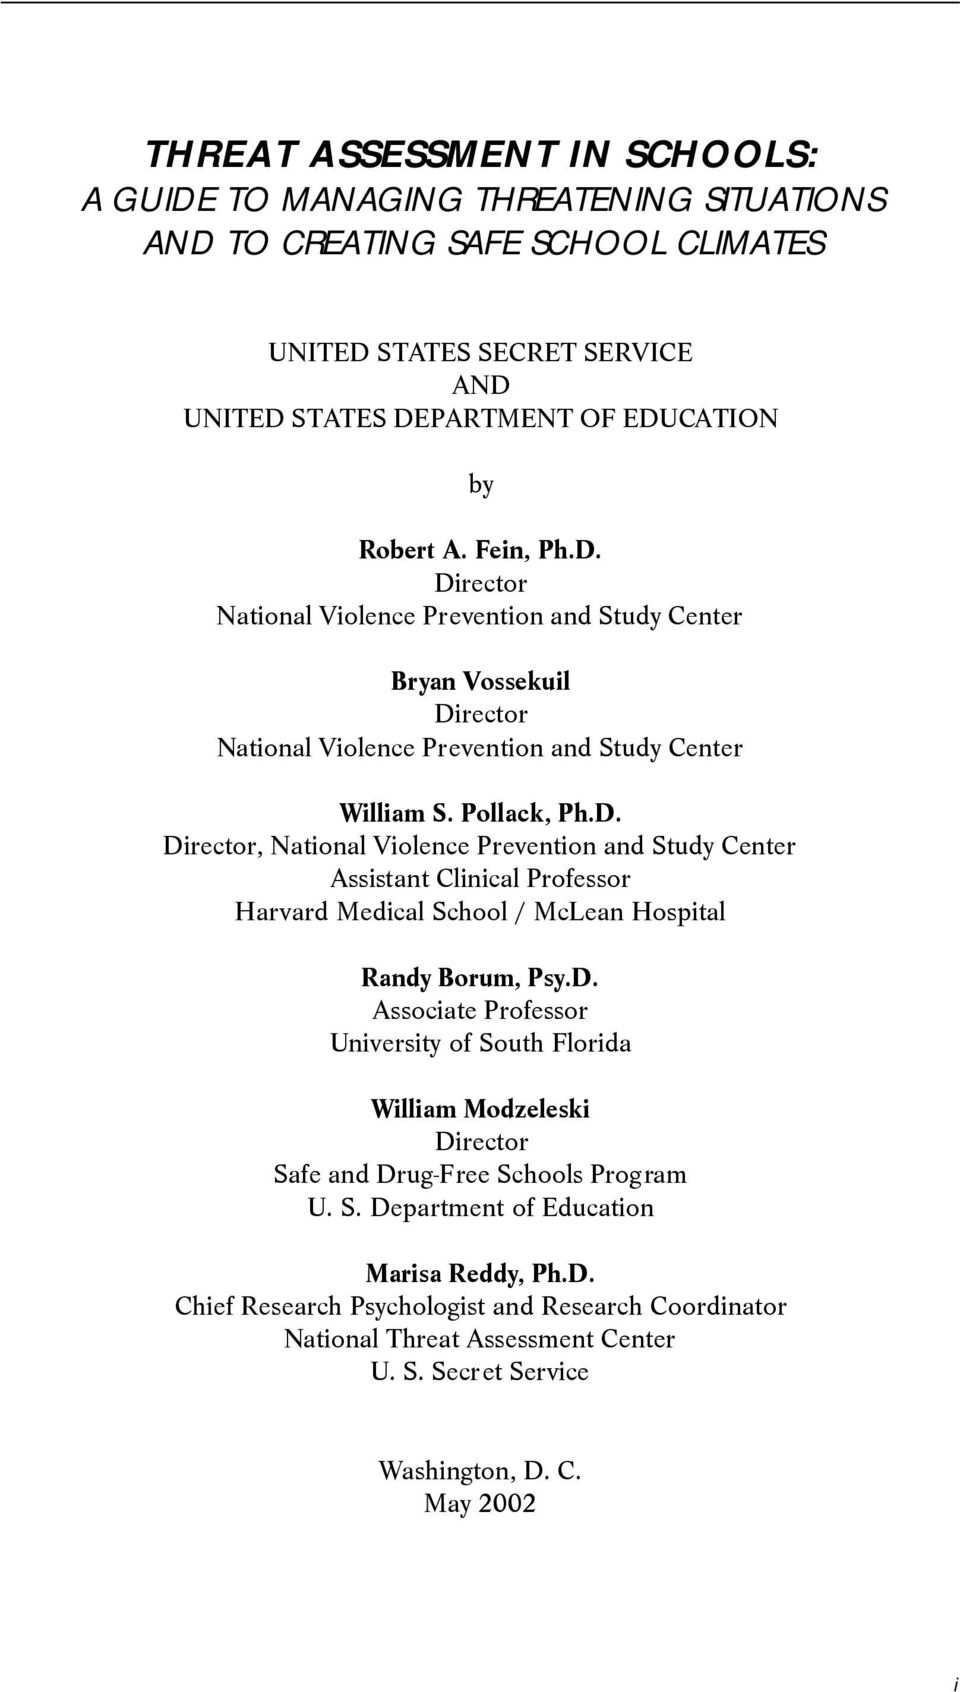 D. Associate Professor University of South Florida William Modzeleski Director Safe and Drug-Free Schools Program U. S. Department of Education Marisa Reddy, Ph.D. Chief Research Psychologist and Research Coordinator National Threat Assessment Center U.